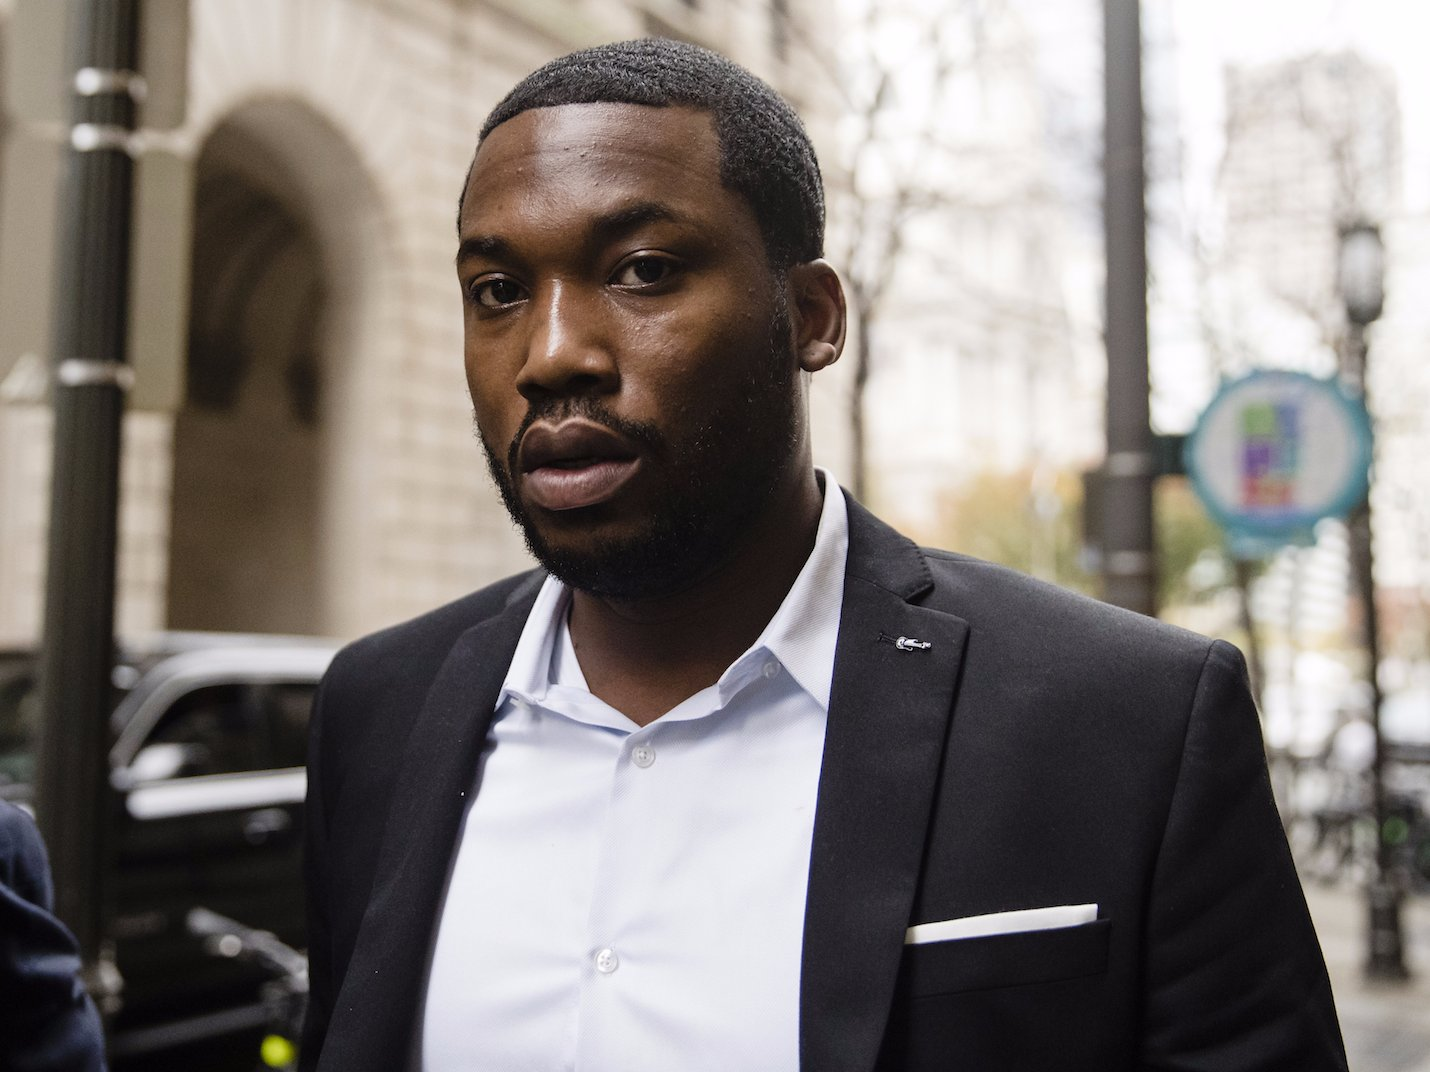 Meek Mill sentenced to up to 4 years in prison